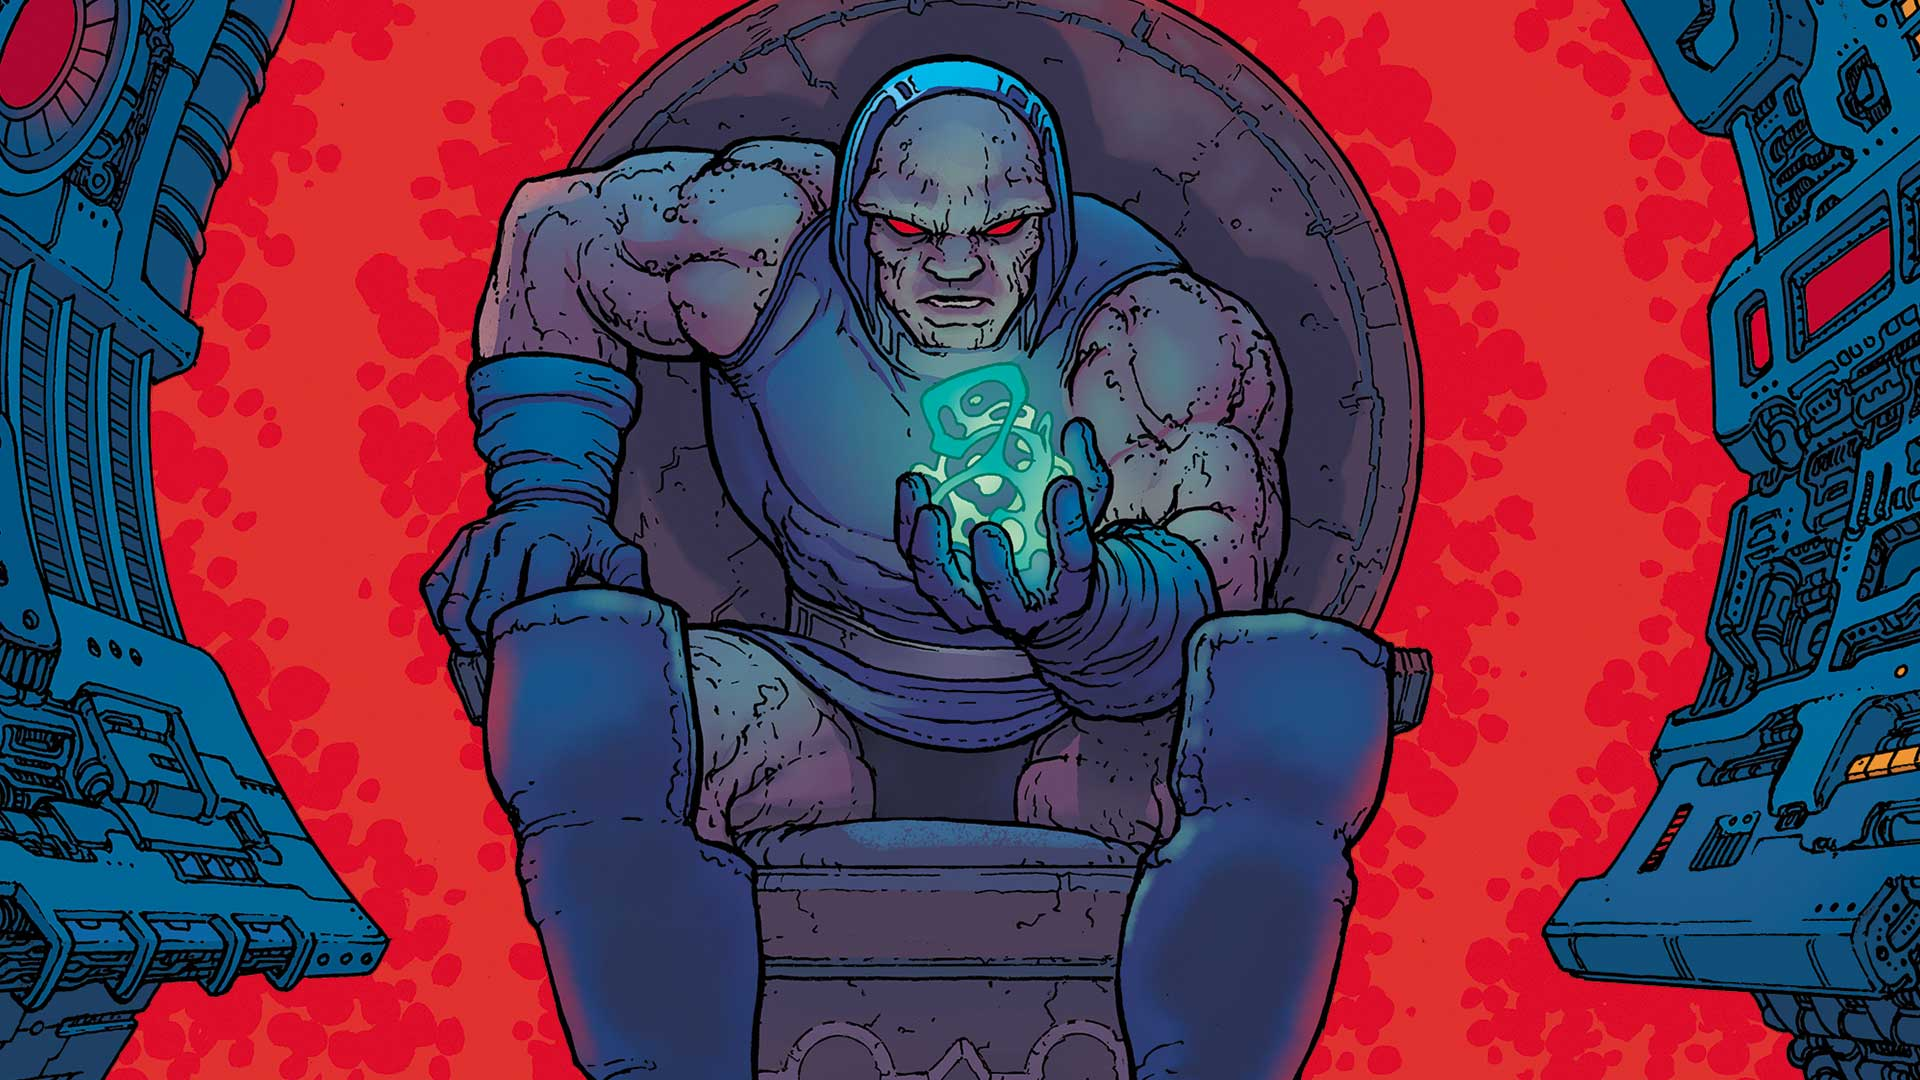 Darkseid pondering his never-ending quest for the Anti-Life Equation. (Source: DC Comics)